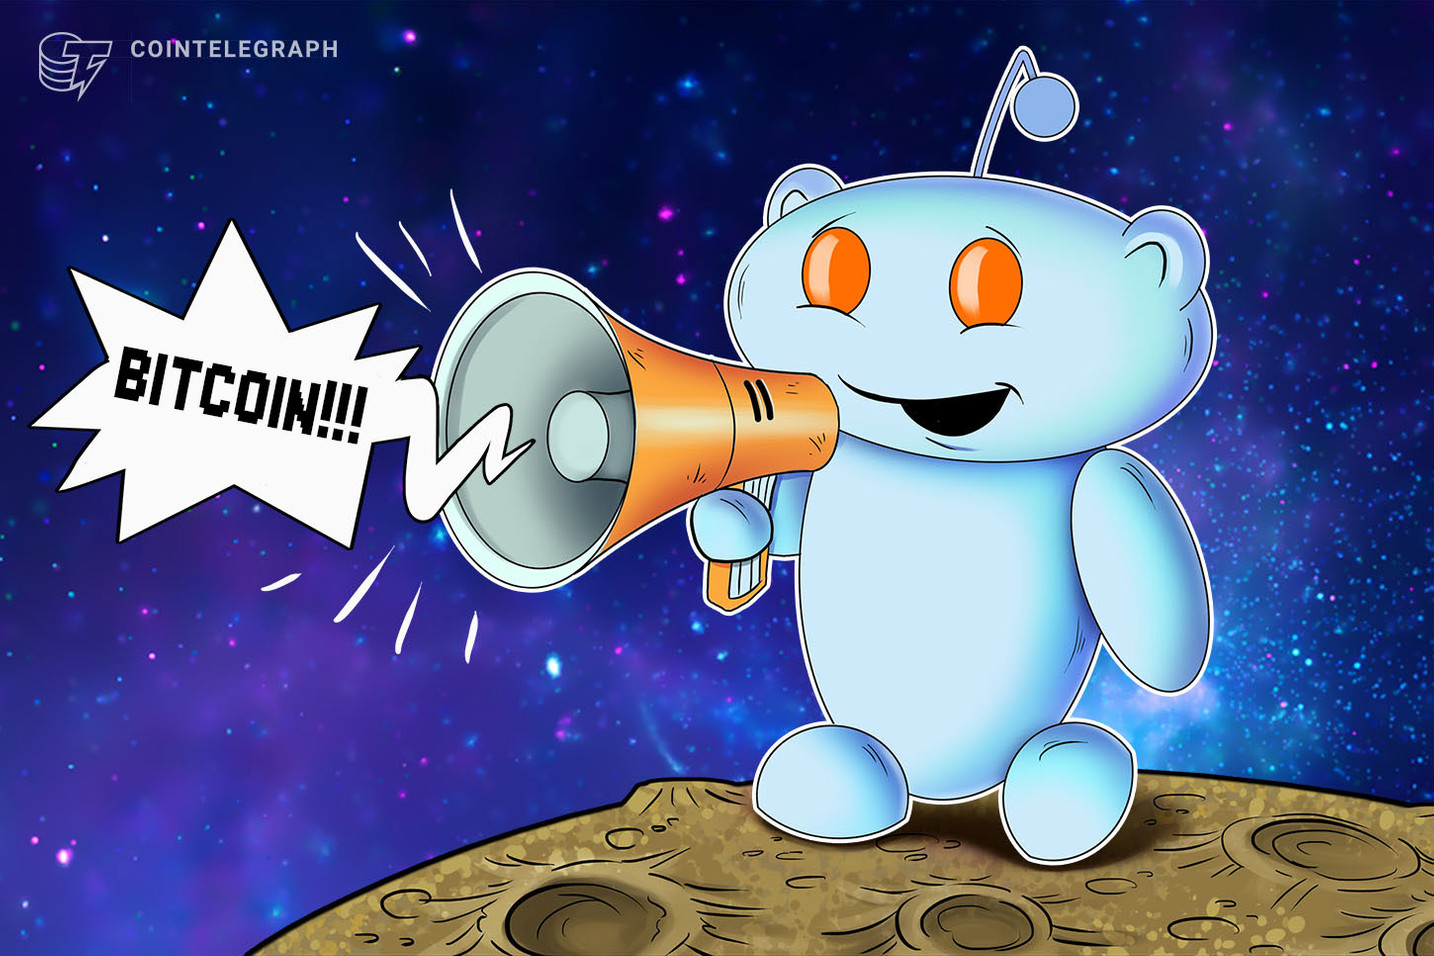 Reddit co-founder hoists the Bitcoin flag on Twitter amid price surge